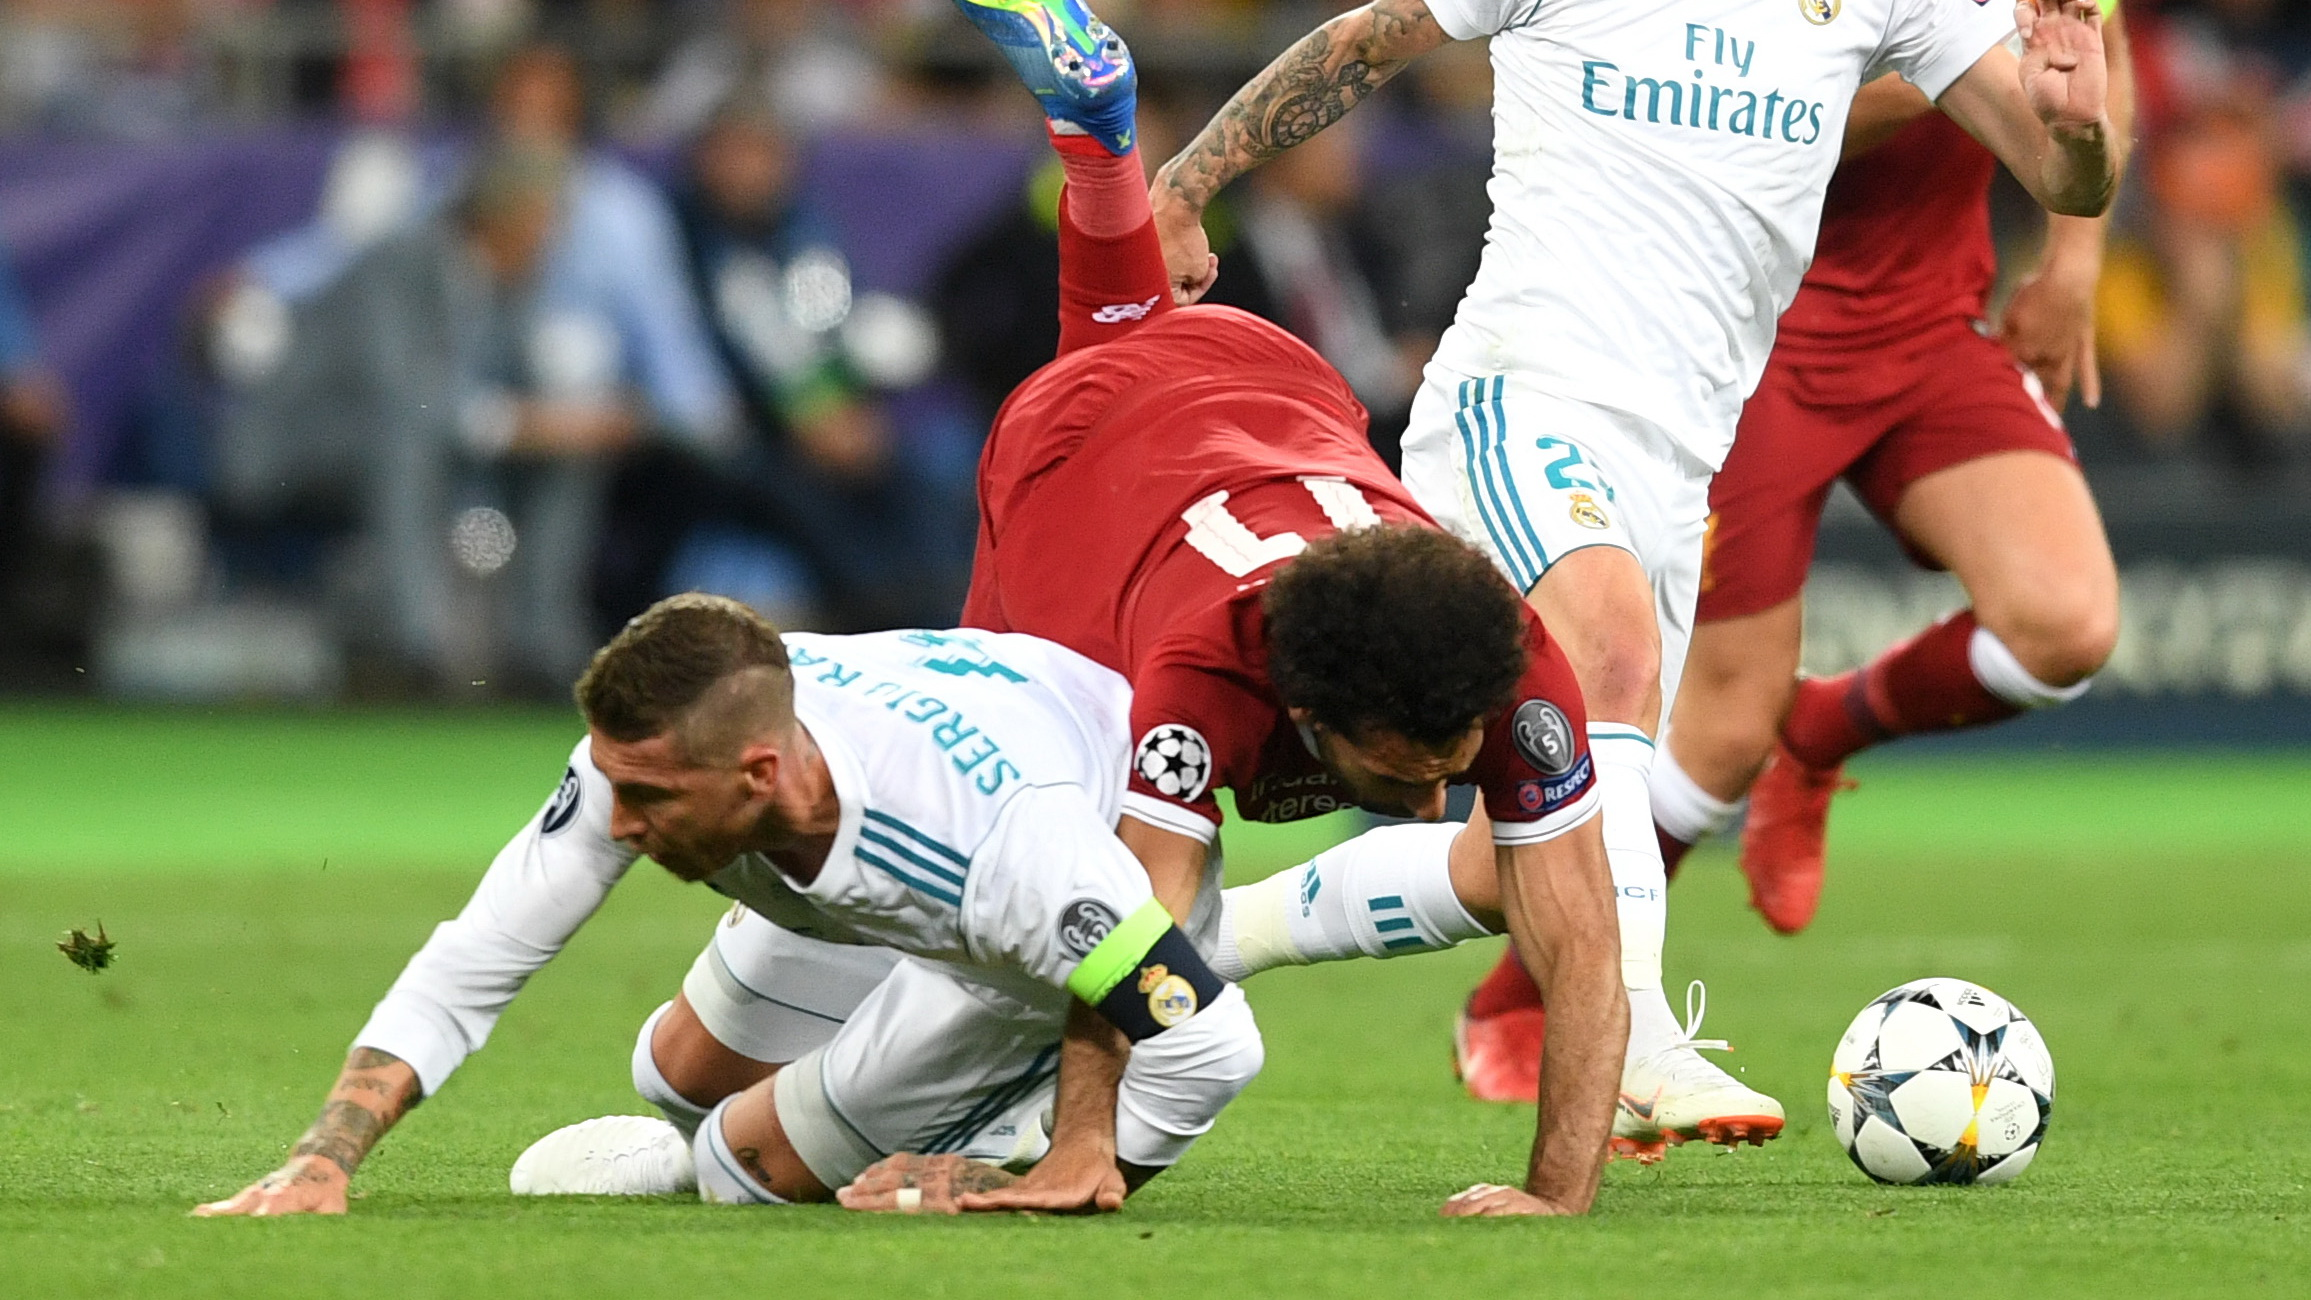 sergio-ramos-real-madrid-mohamed-salah-liverpool-champions-league-2018_16tiou1g6e84a1tyw2q38954ih